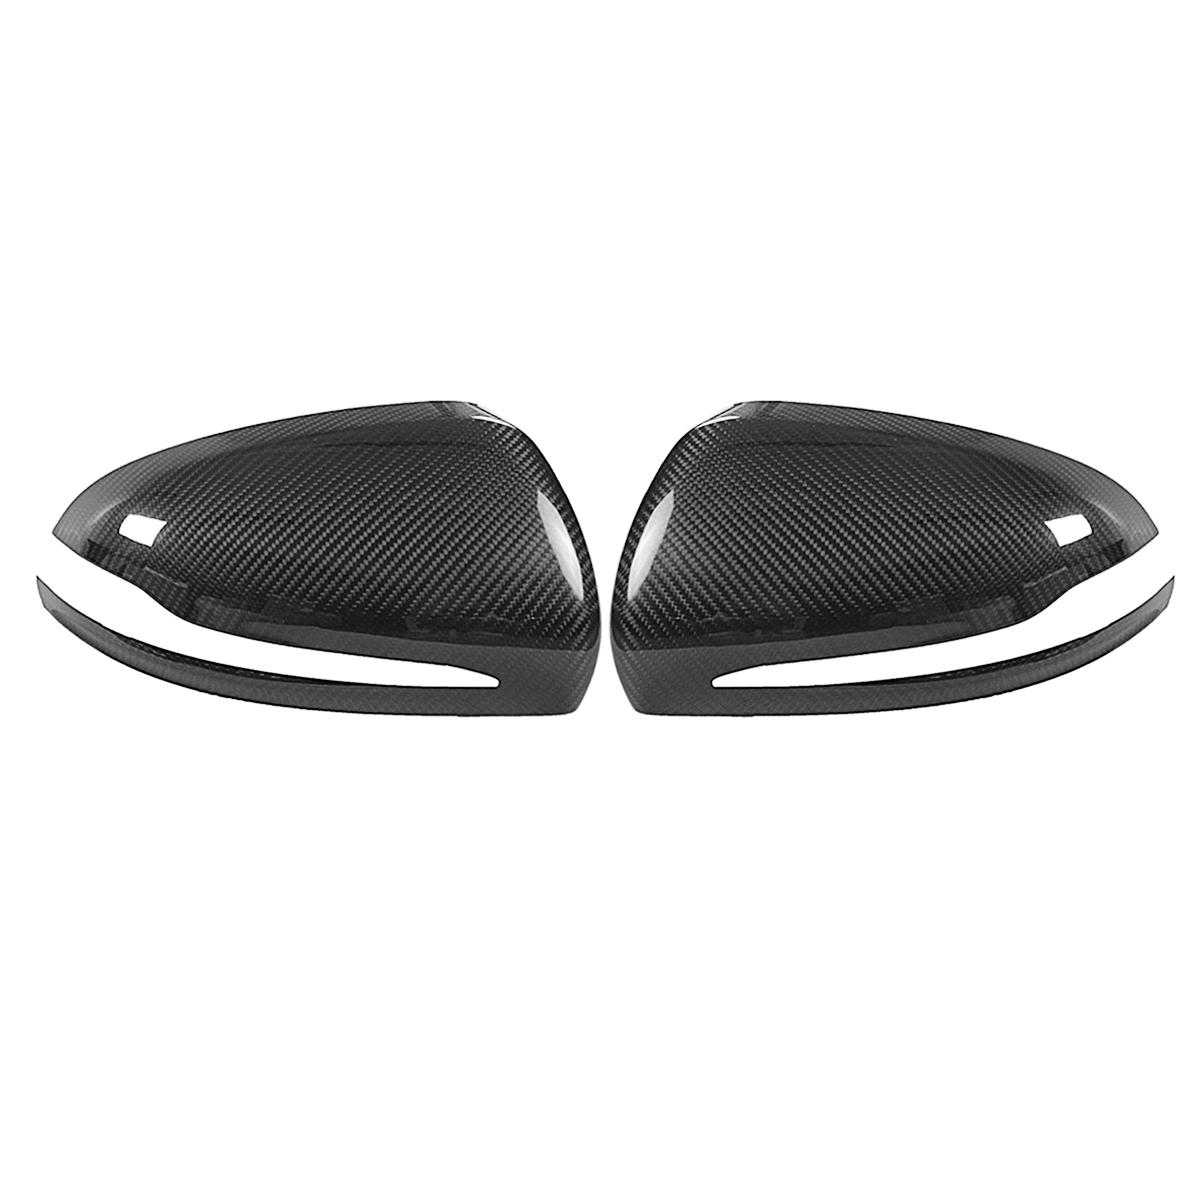 Carbon Fiber Side Car Mirror Cover Caps for 2015 to 18 Mercedes W205 C300 C400 450